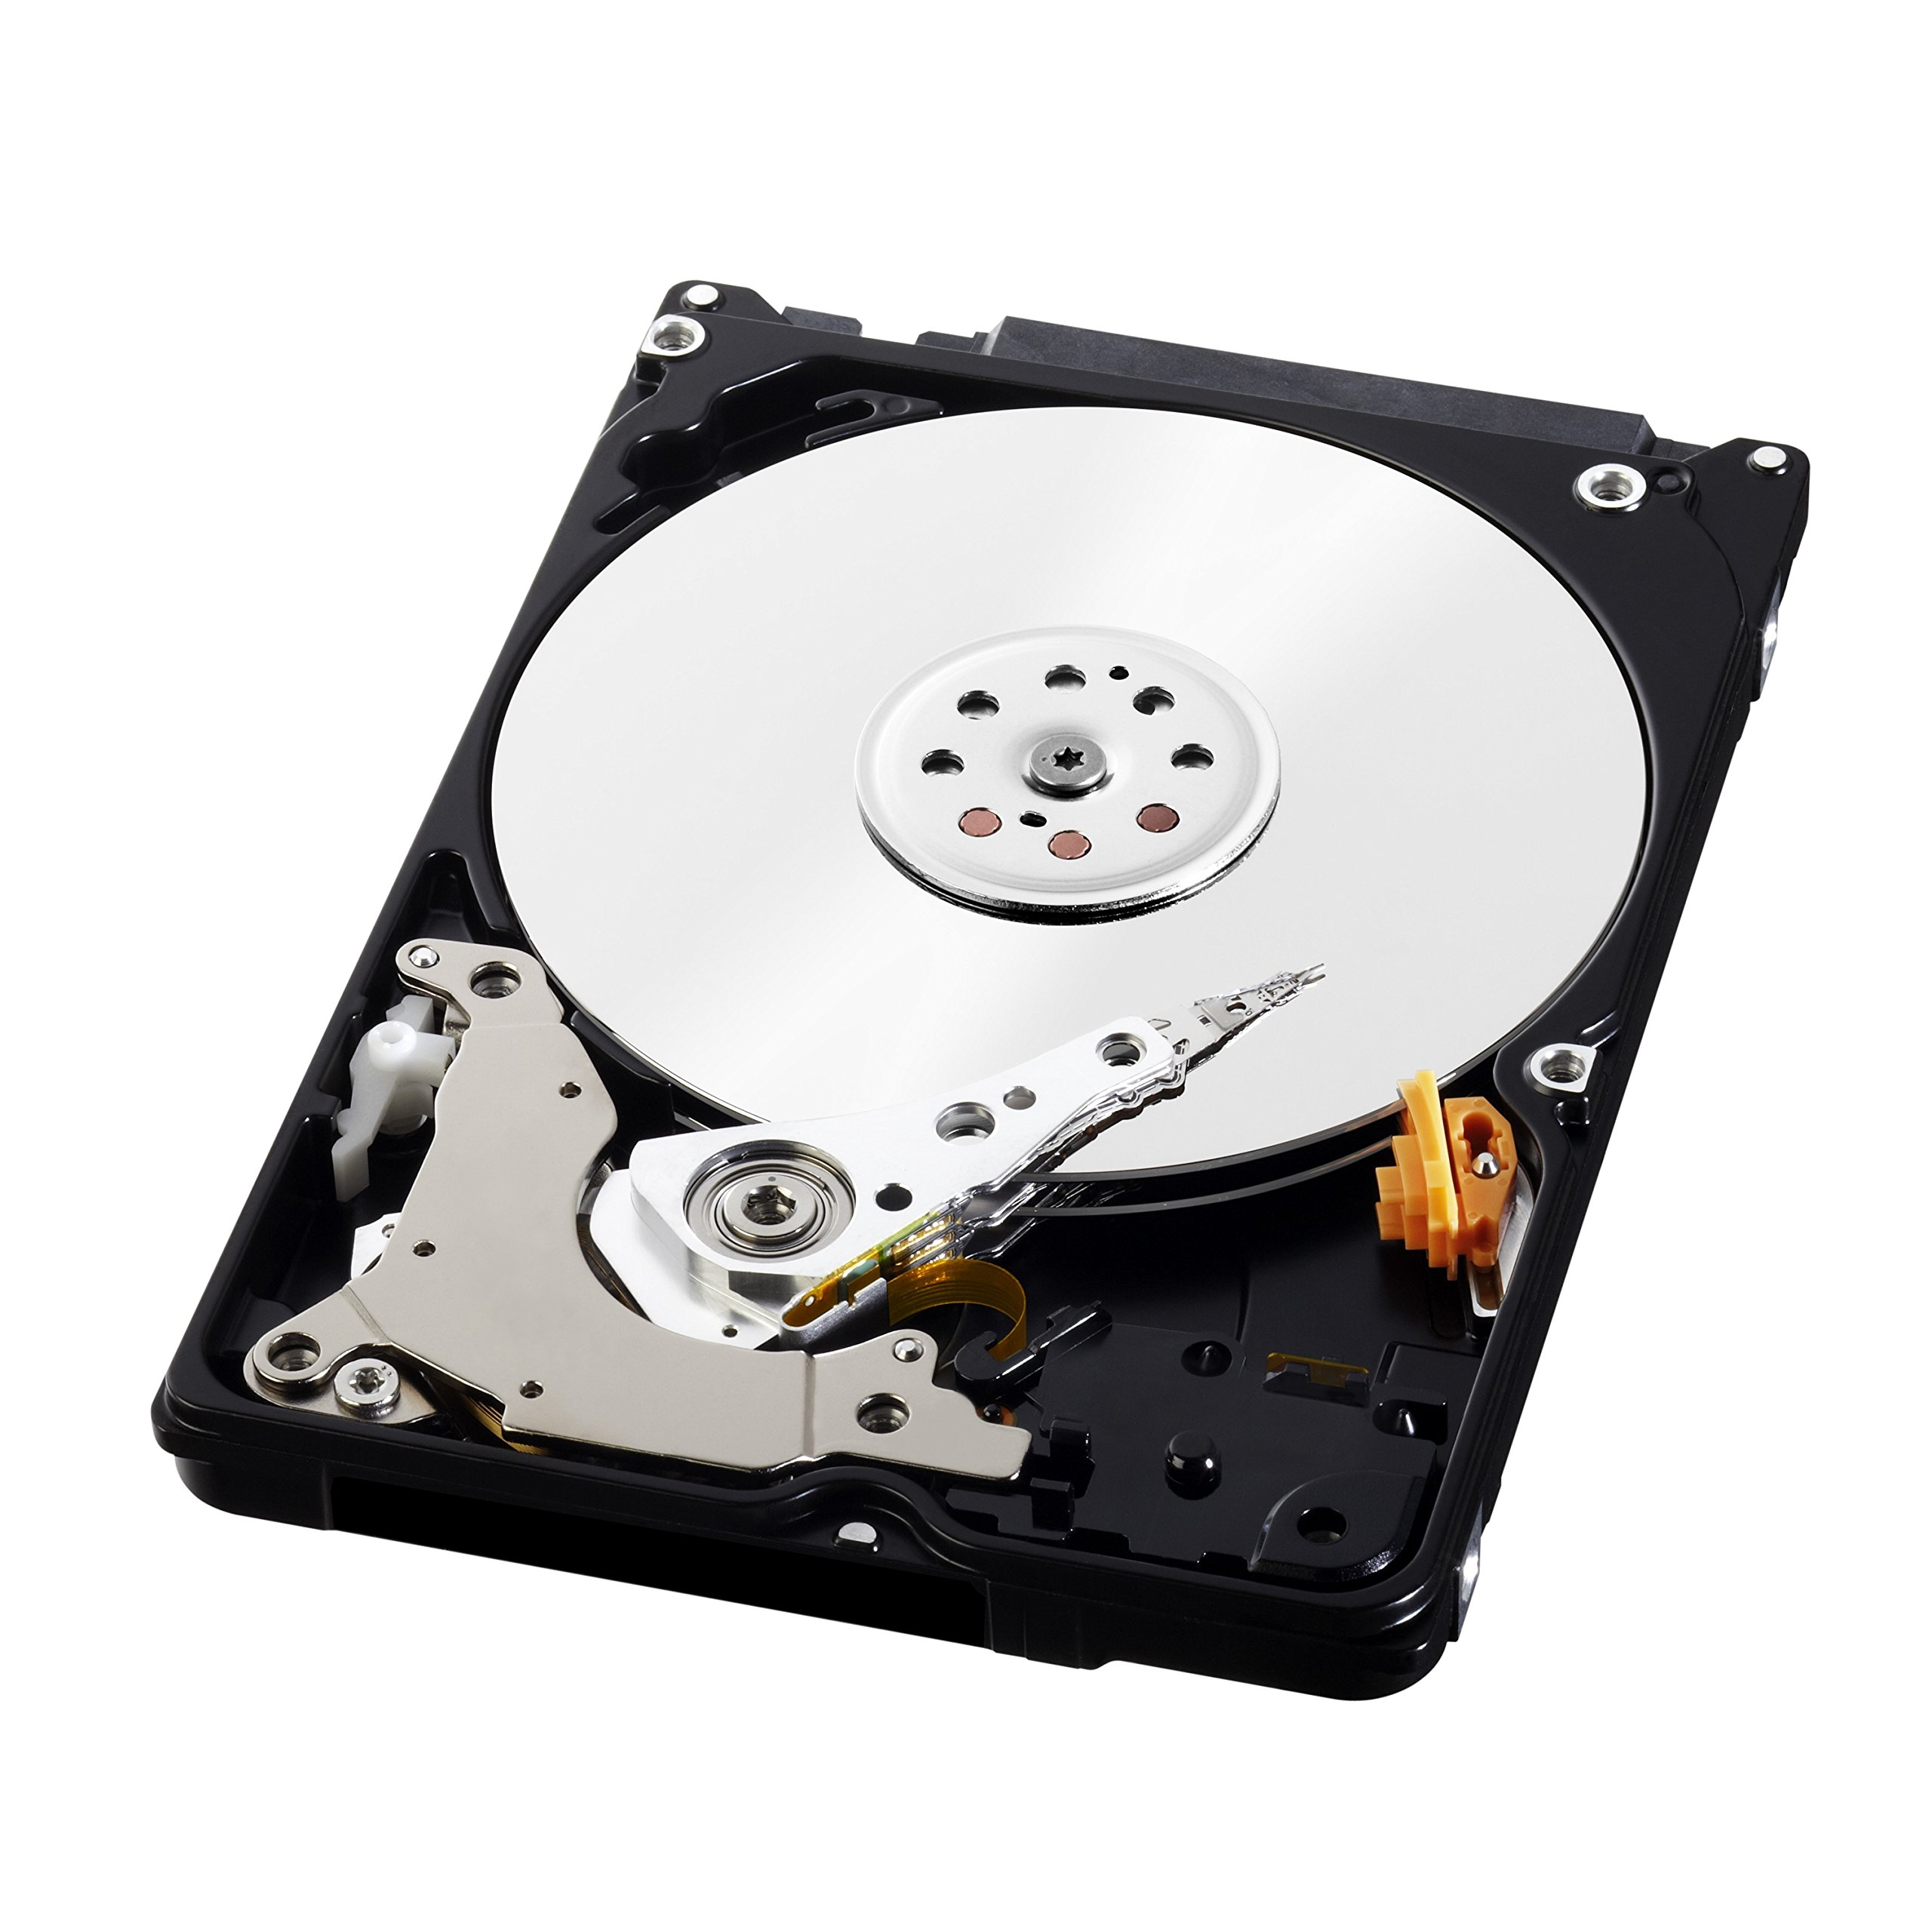 WD Blue 1TB Mobile Hard Disk Drive - 5400 RPM SATA 6 Gb/s 9.5 MM 2.5 Inch - WD10JPVX